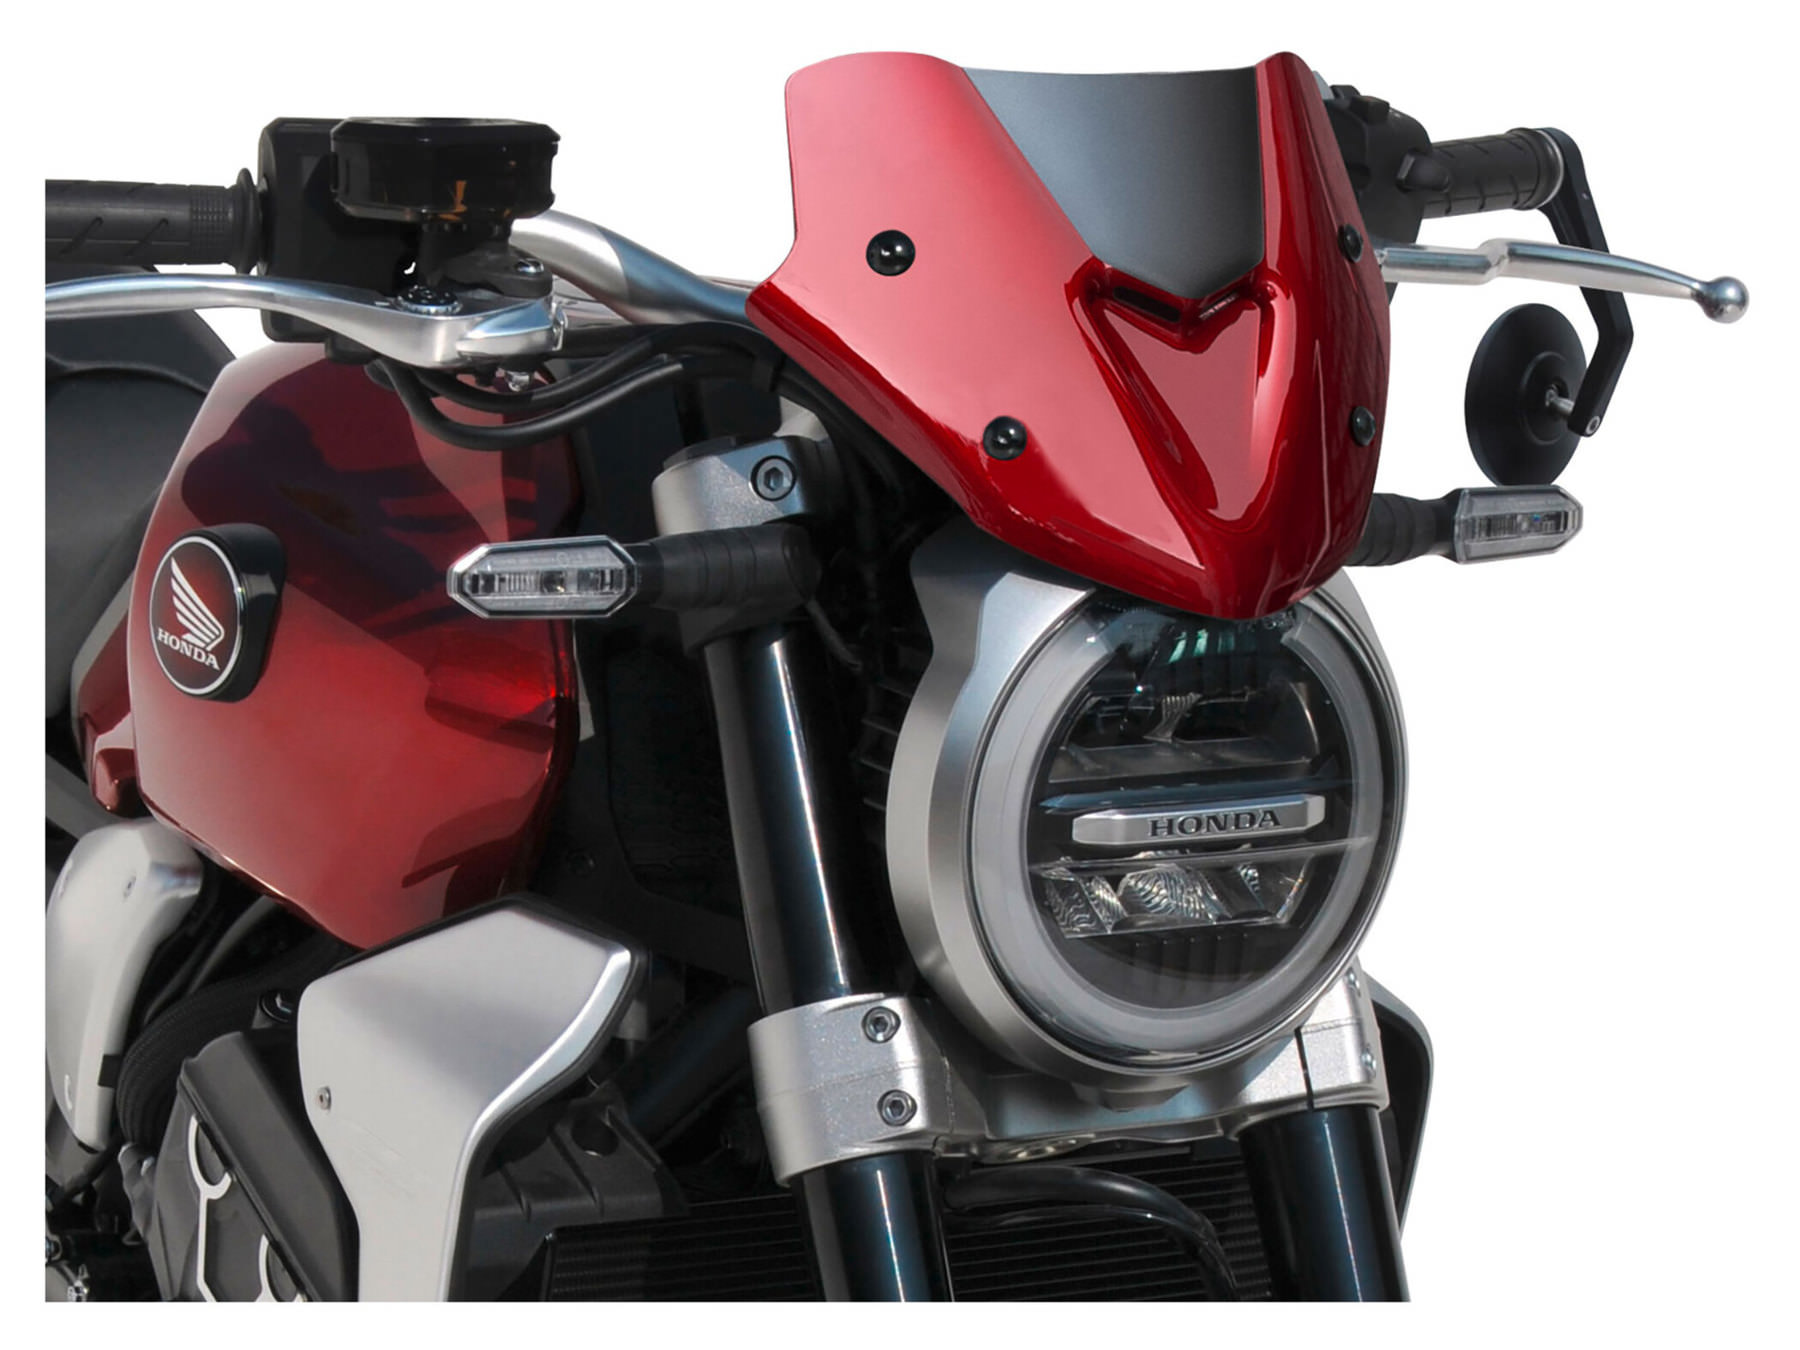 Buy Bodystyle Headlight Fairing Painted Or Unpainted Louis Motorcycle Clothing And Technology